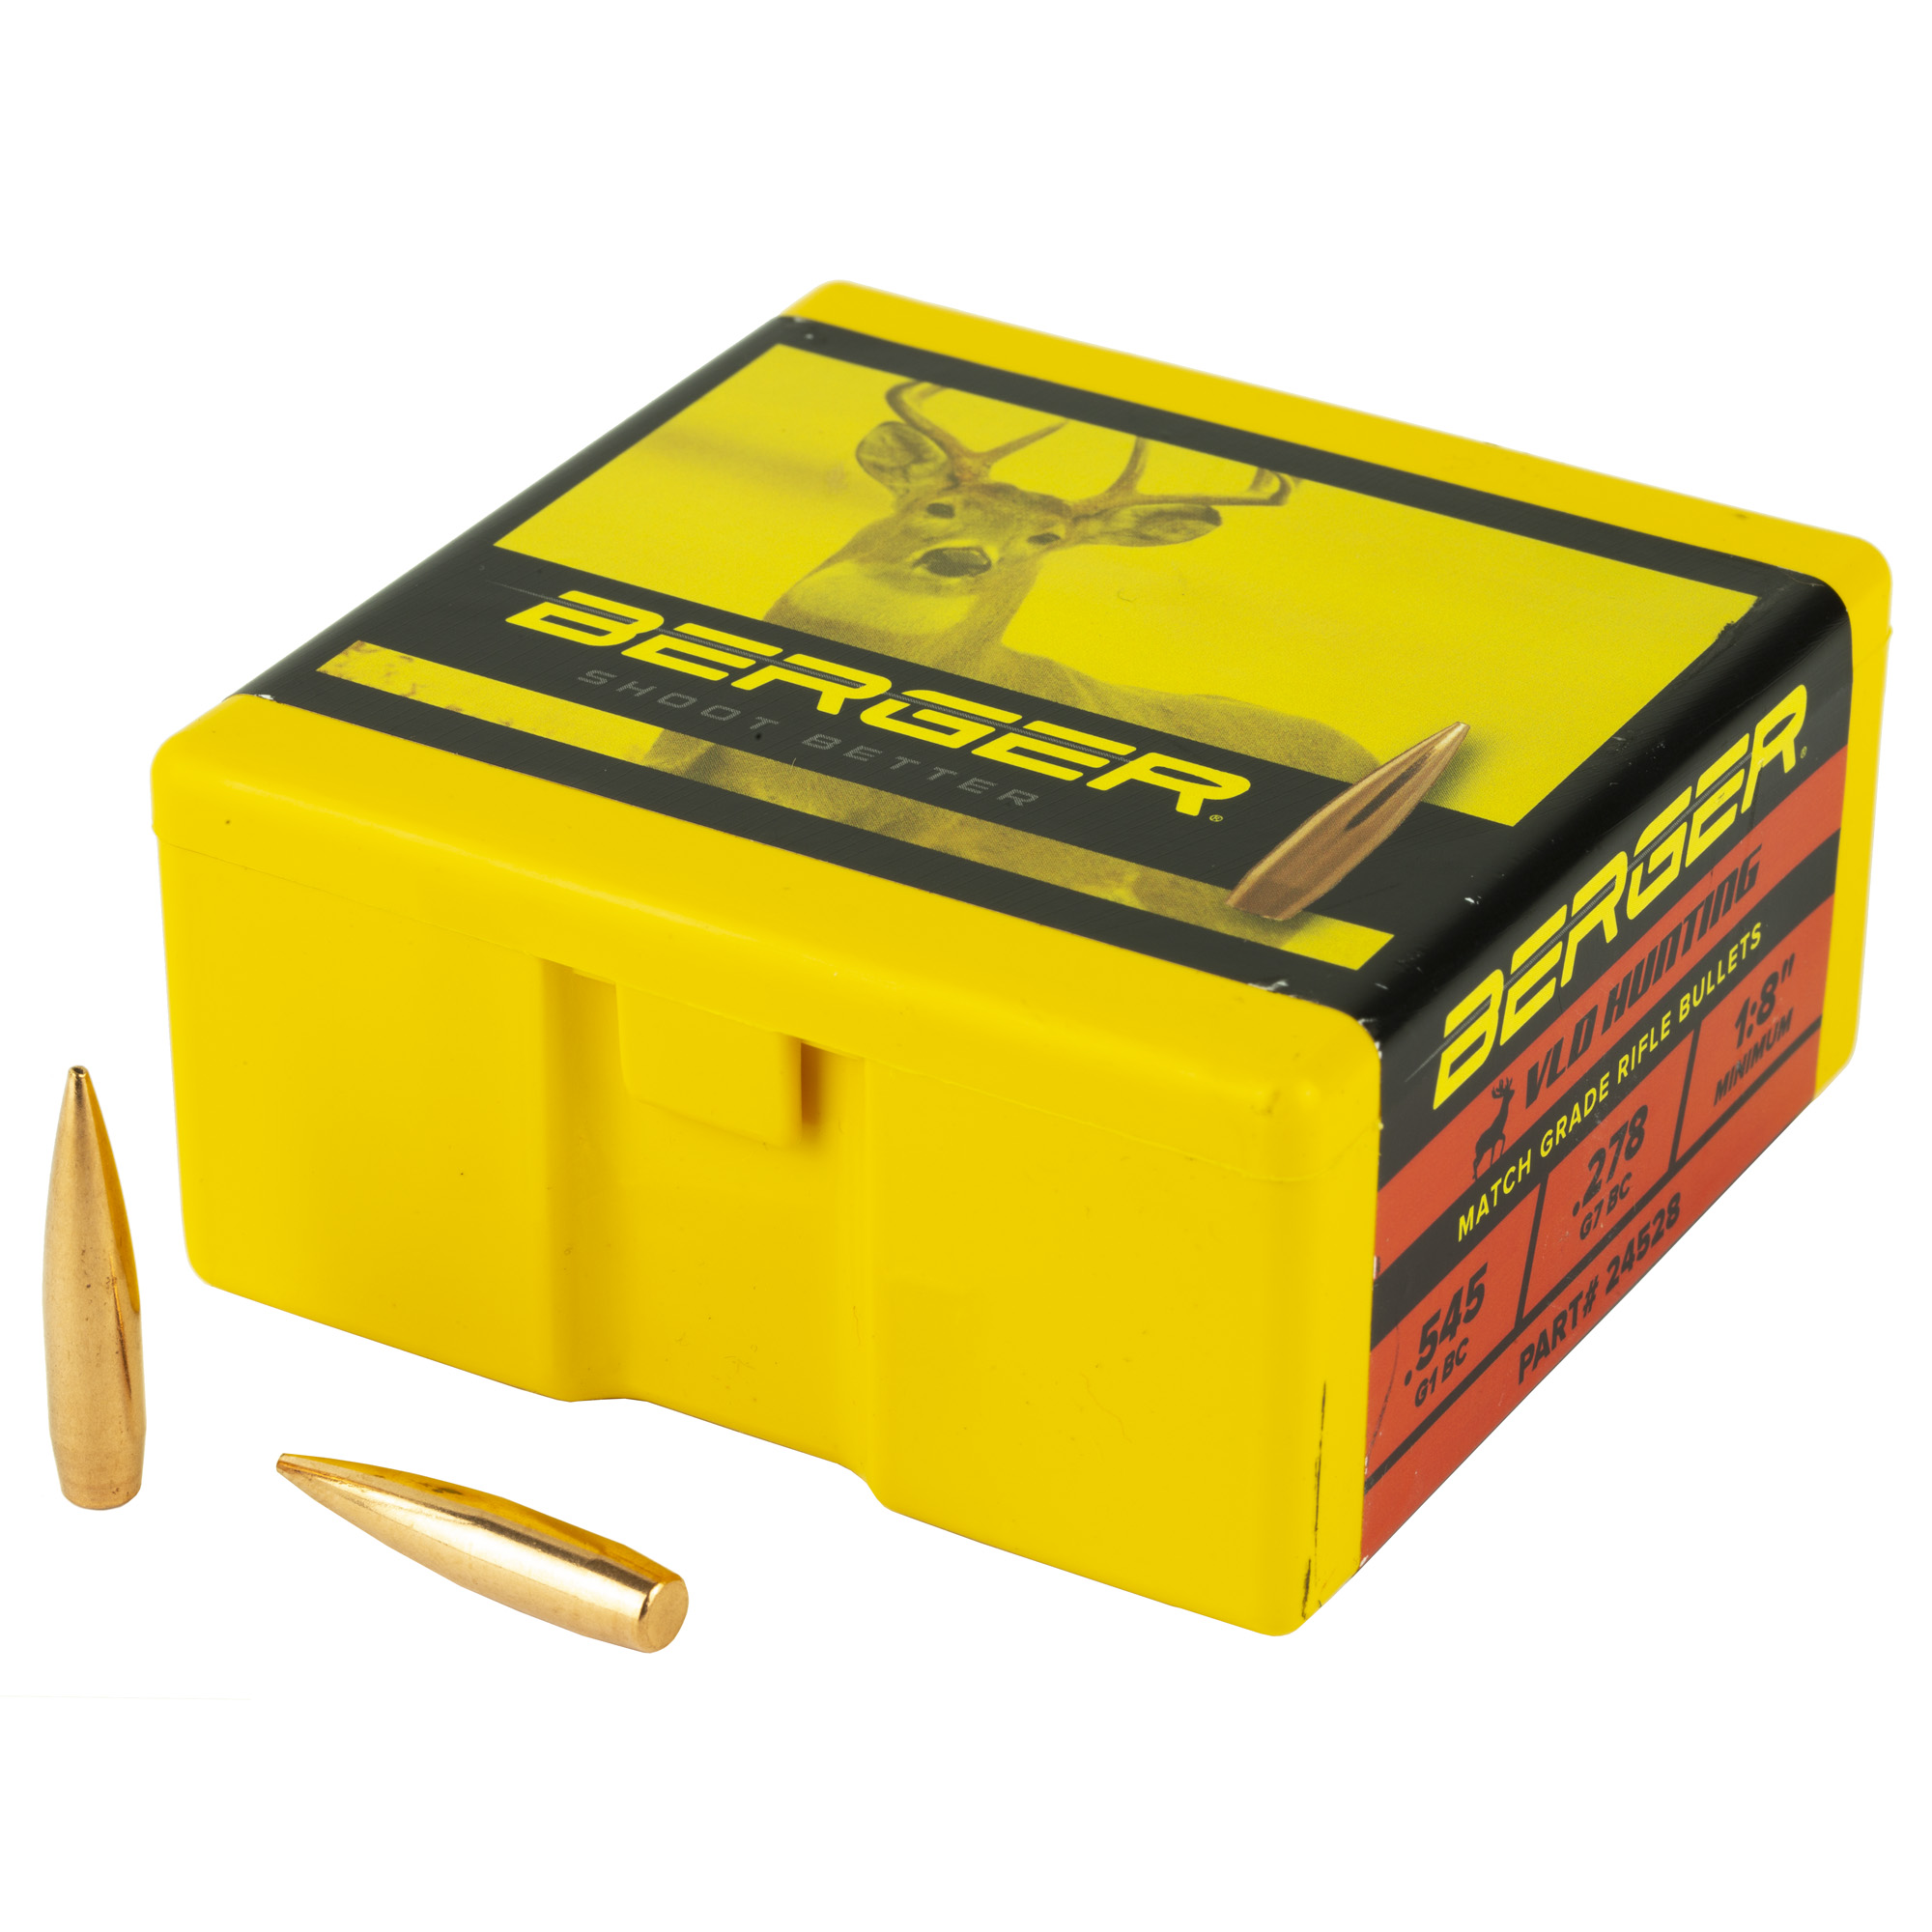 Berger .243 105g Hunt Vld 100ct